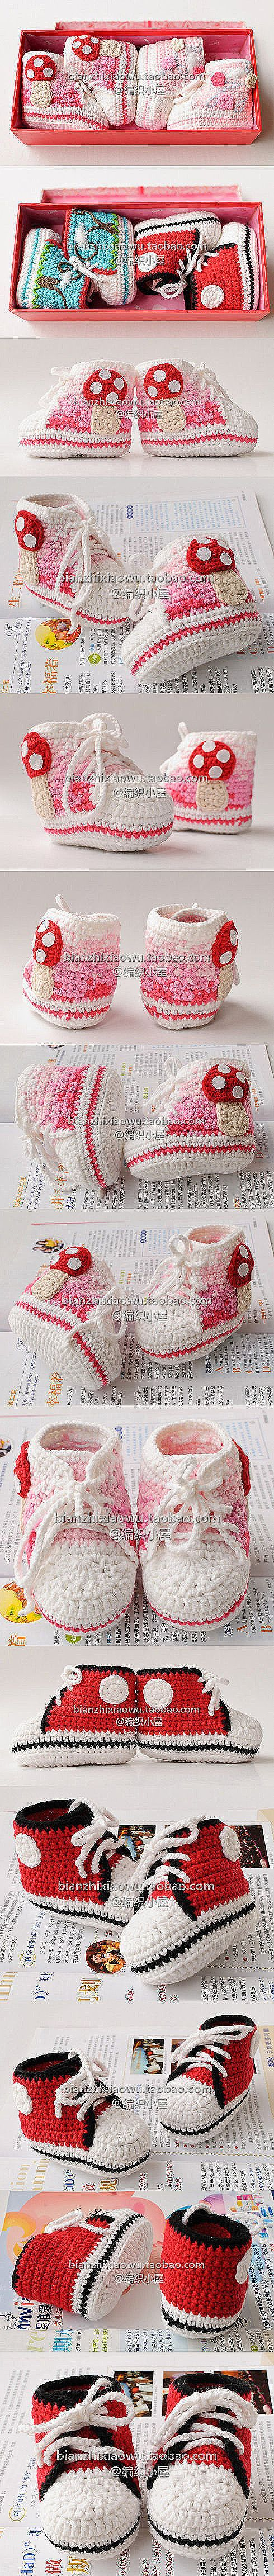 http://www.aliexpress.com/store/1687168 cute booties inspiration and ...